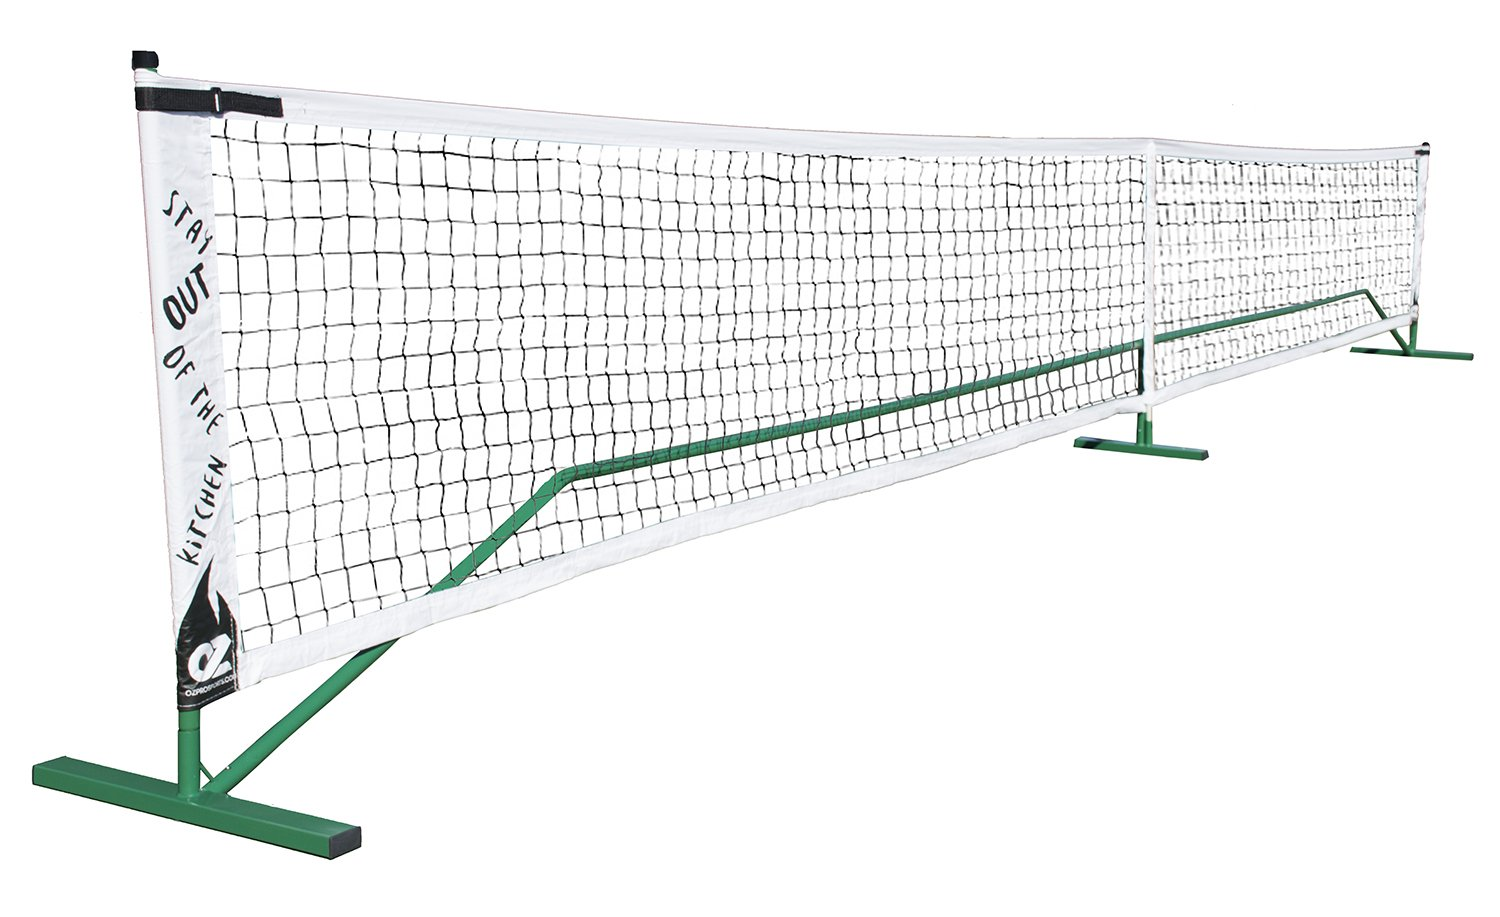 Indoor or Outdoor Portable Pickleball Net System | Stay Out Of The Kitchen by OZ by OZ